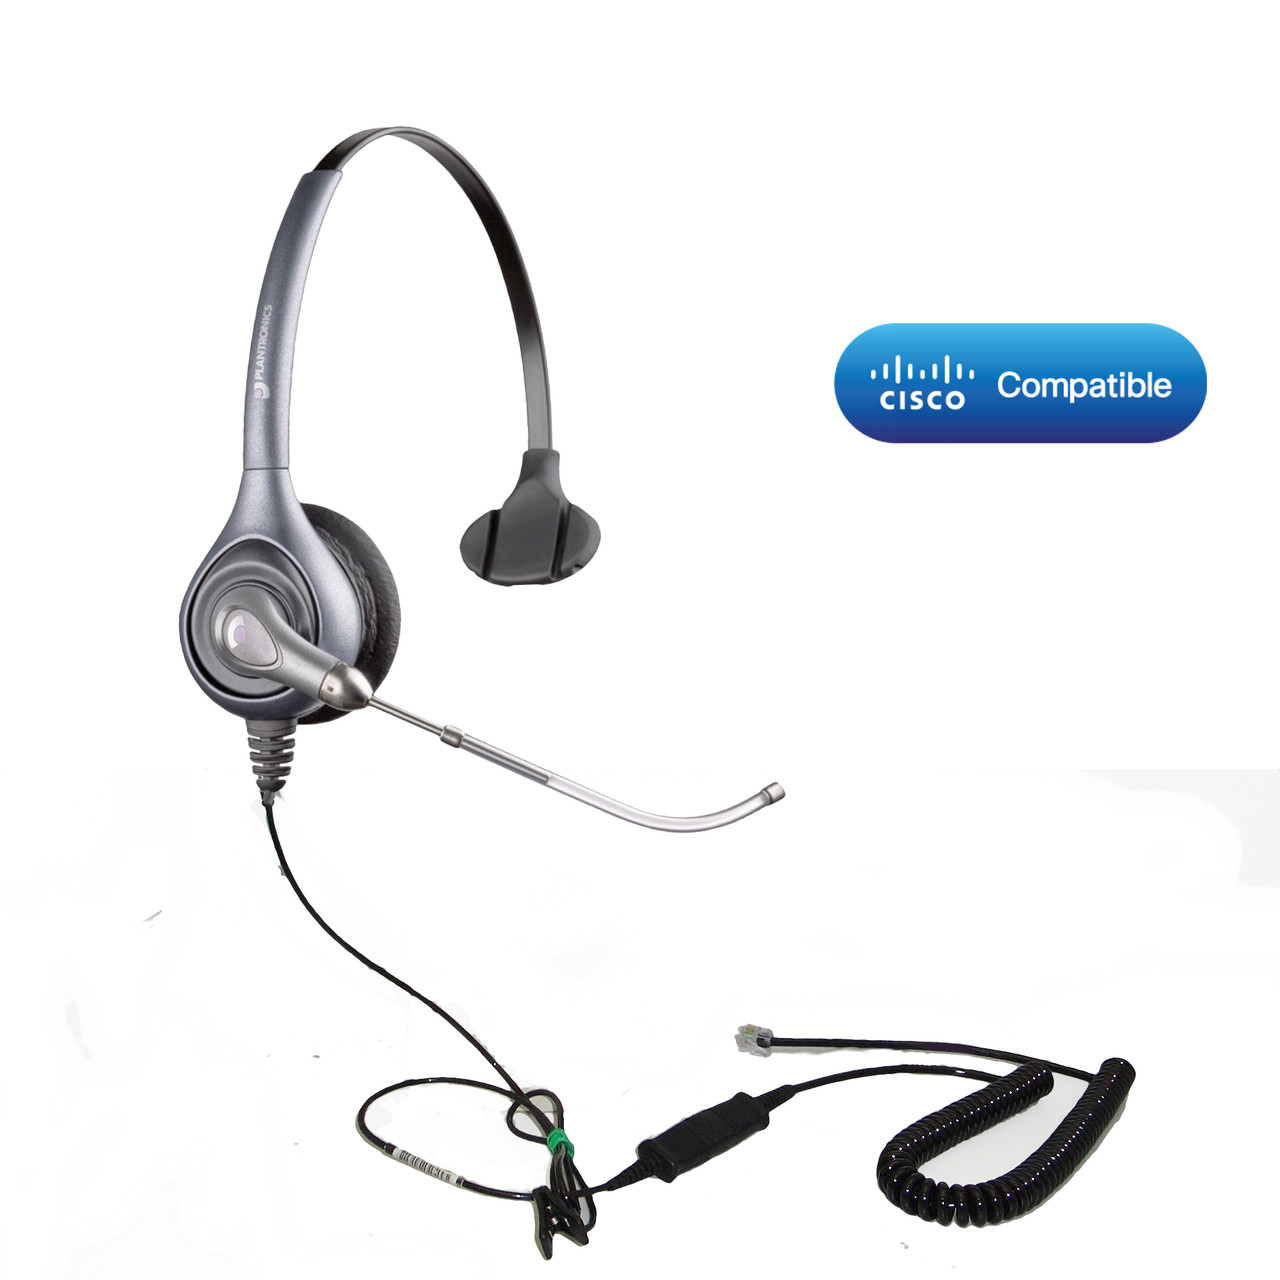 Headset Cisco Brand | Wiring Diagrams